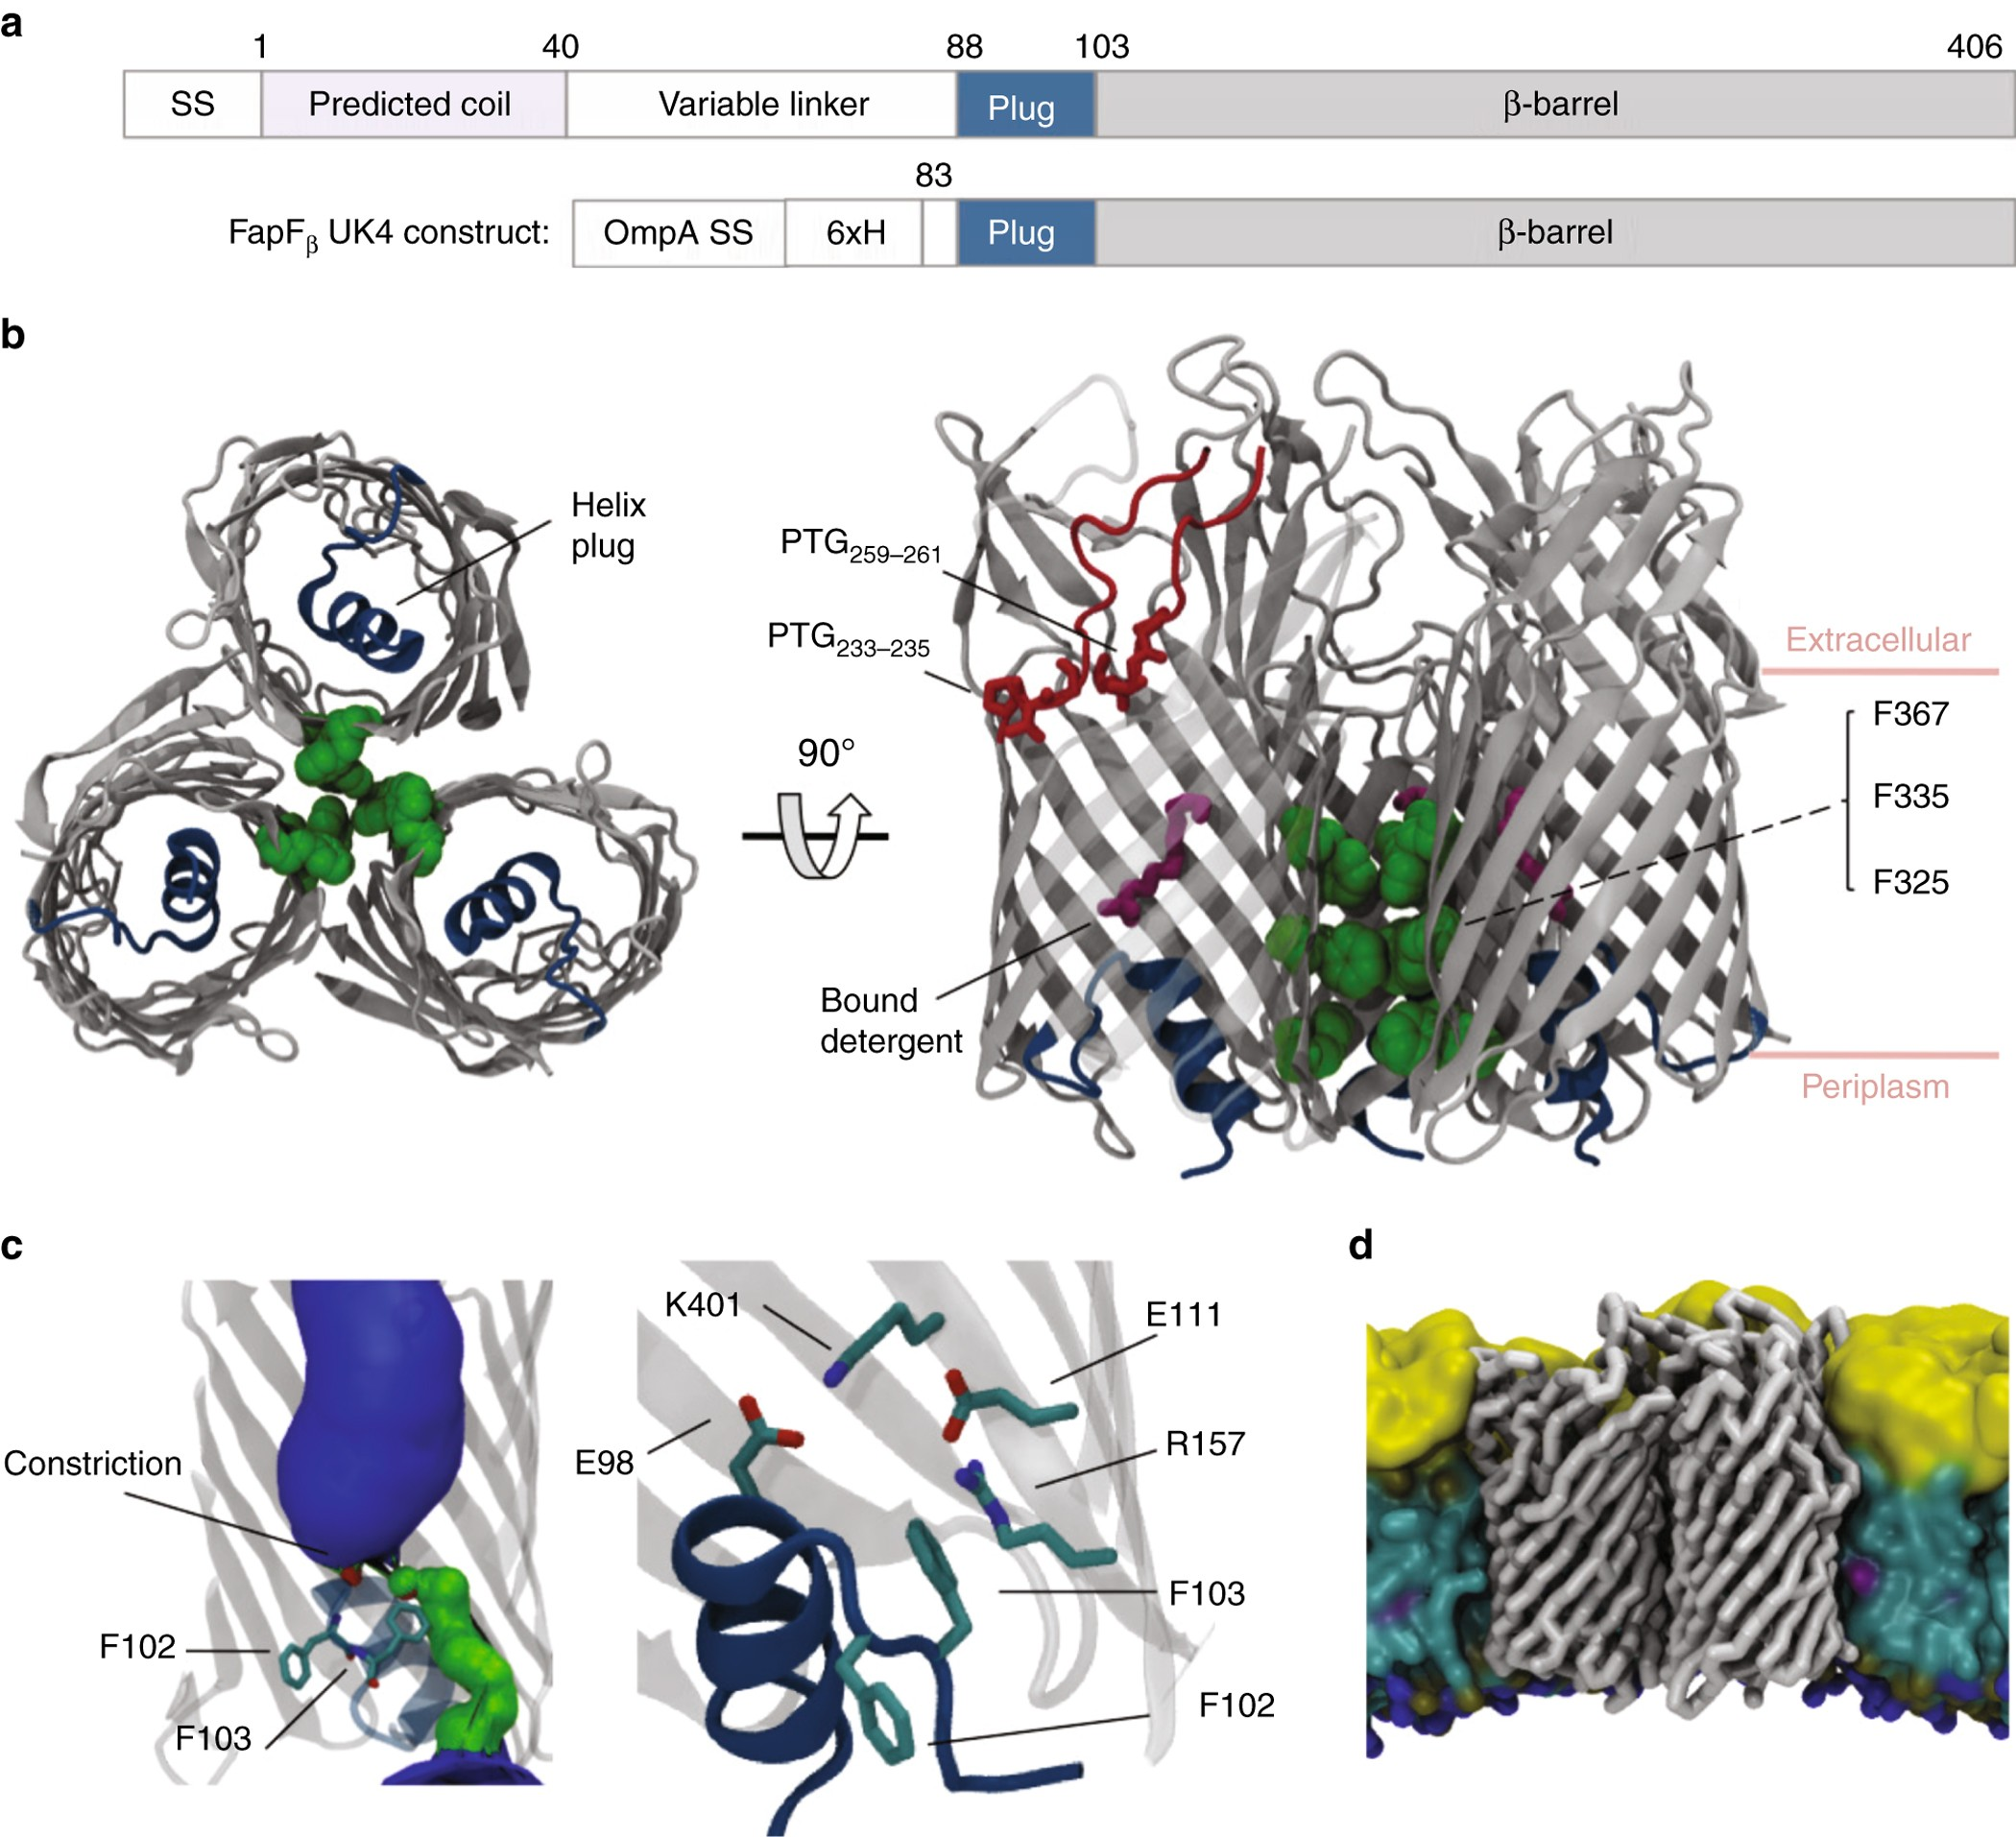 A new class of hybrid secretion system is employed in Pseudomonas